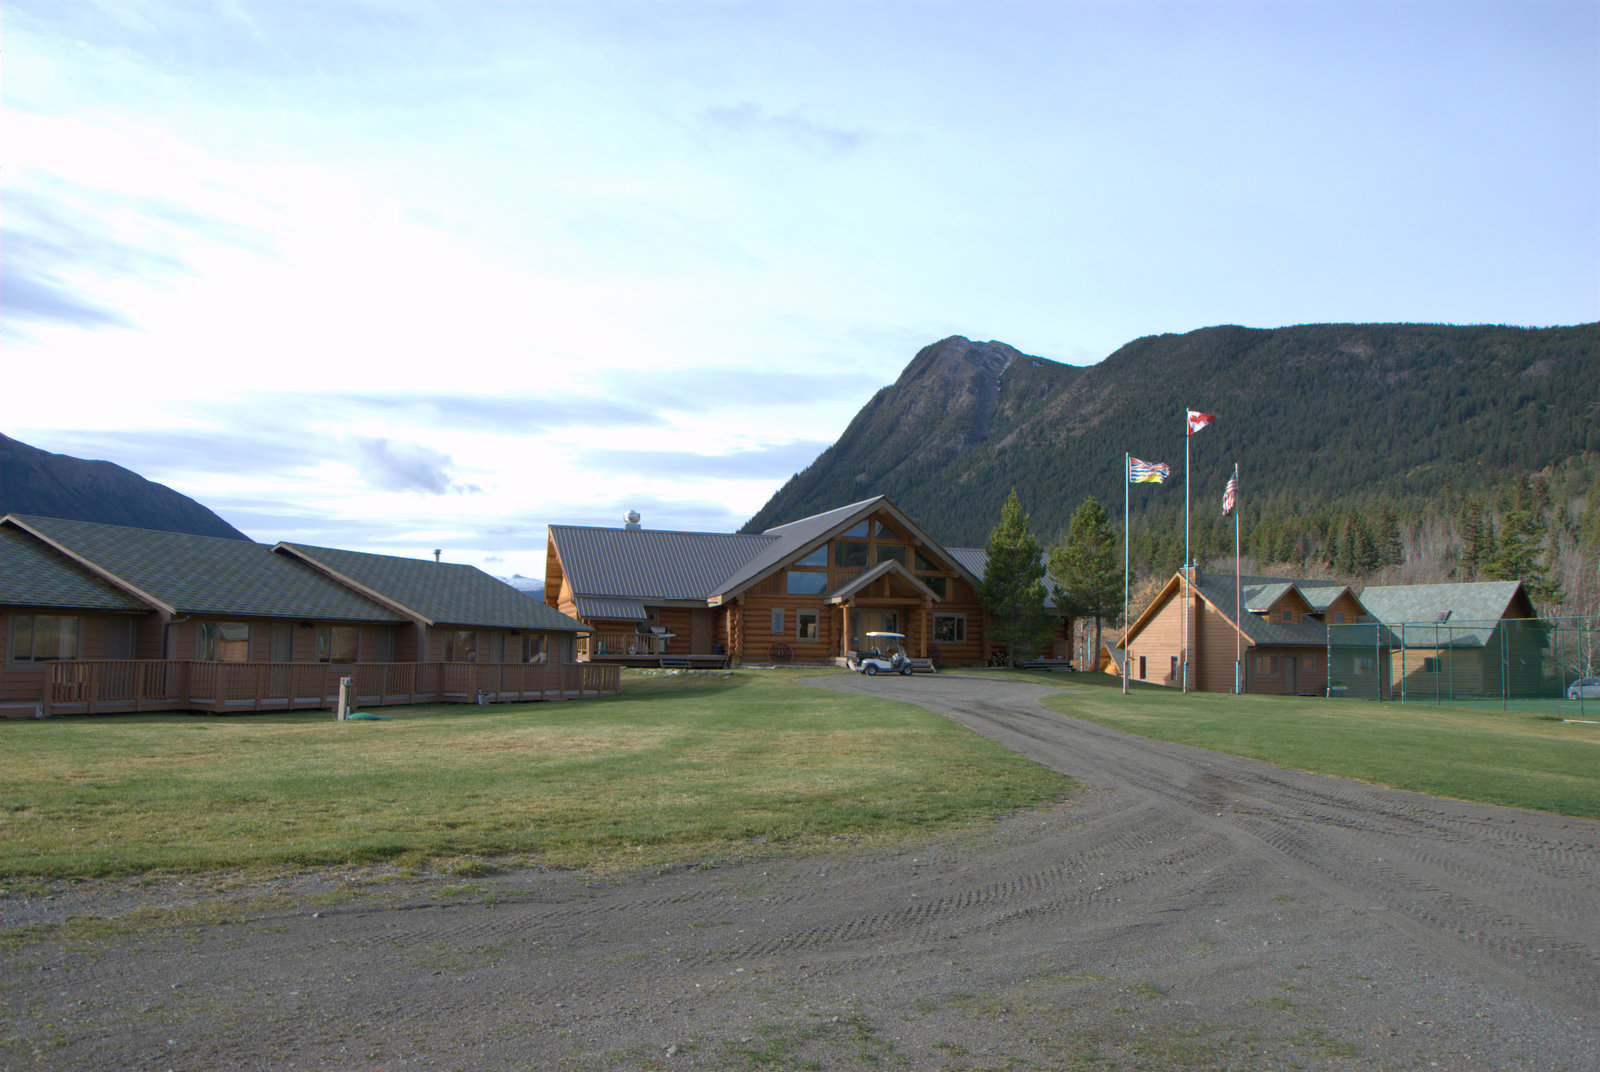 Rooms - (Not AVAILABLE 2019) - The rooms is comprised of 12 one-bedroom/one-bathroom rooms with immediate access to the lodge and lake.